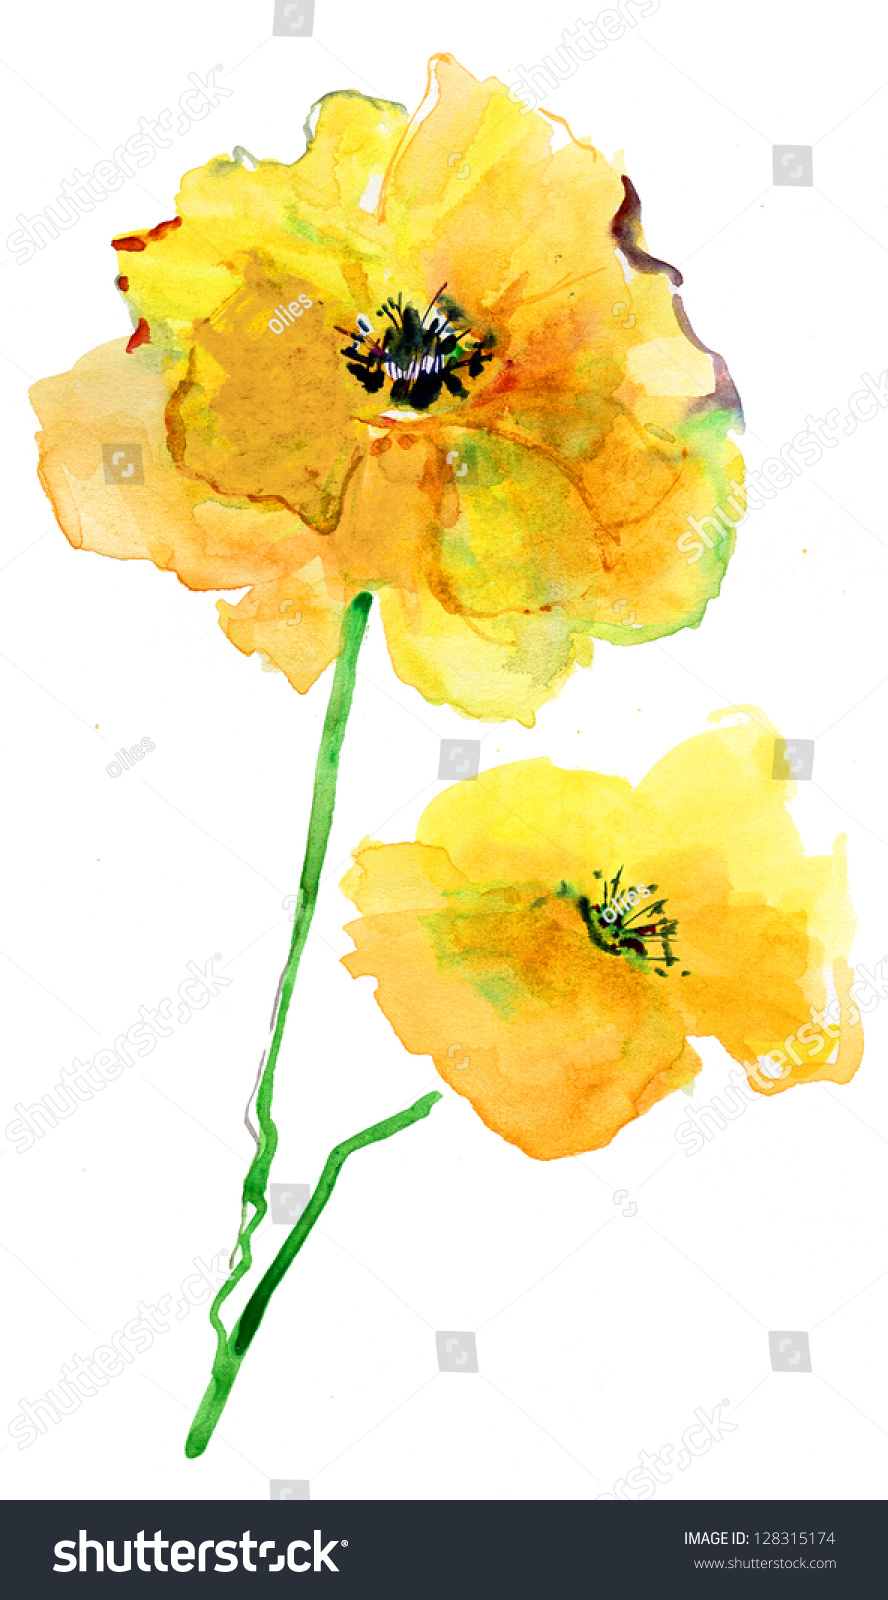 Colorful Yellow Poppy, Watercolor Illustration - 128315174 ...